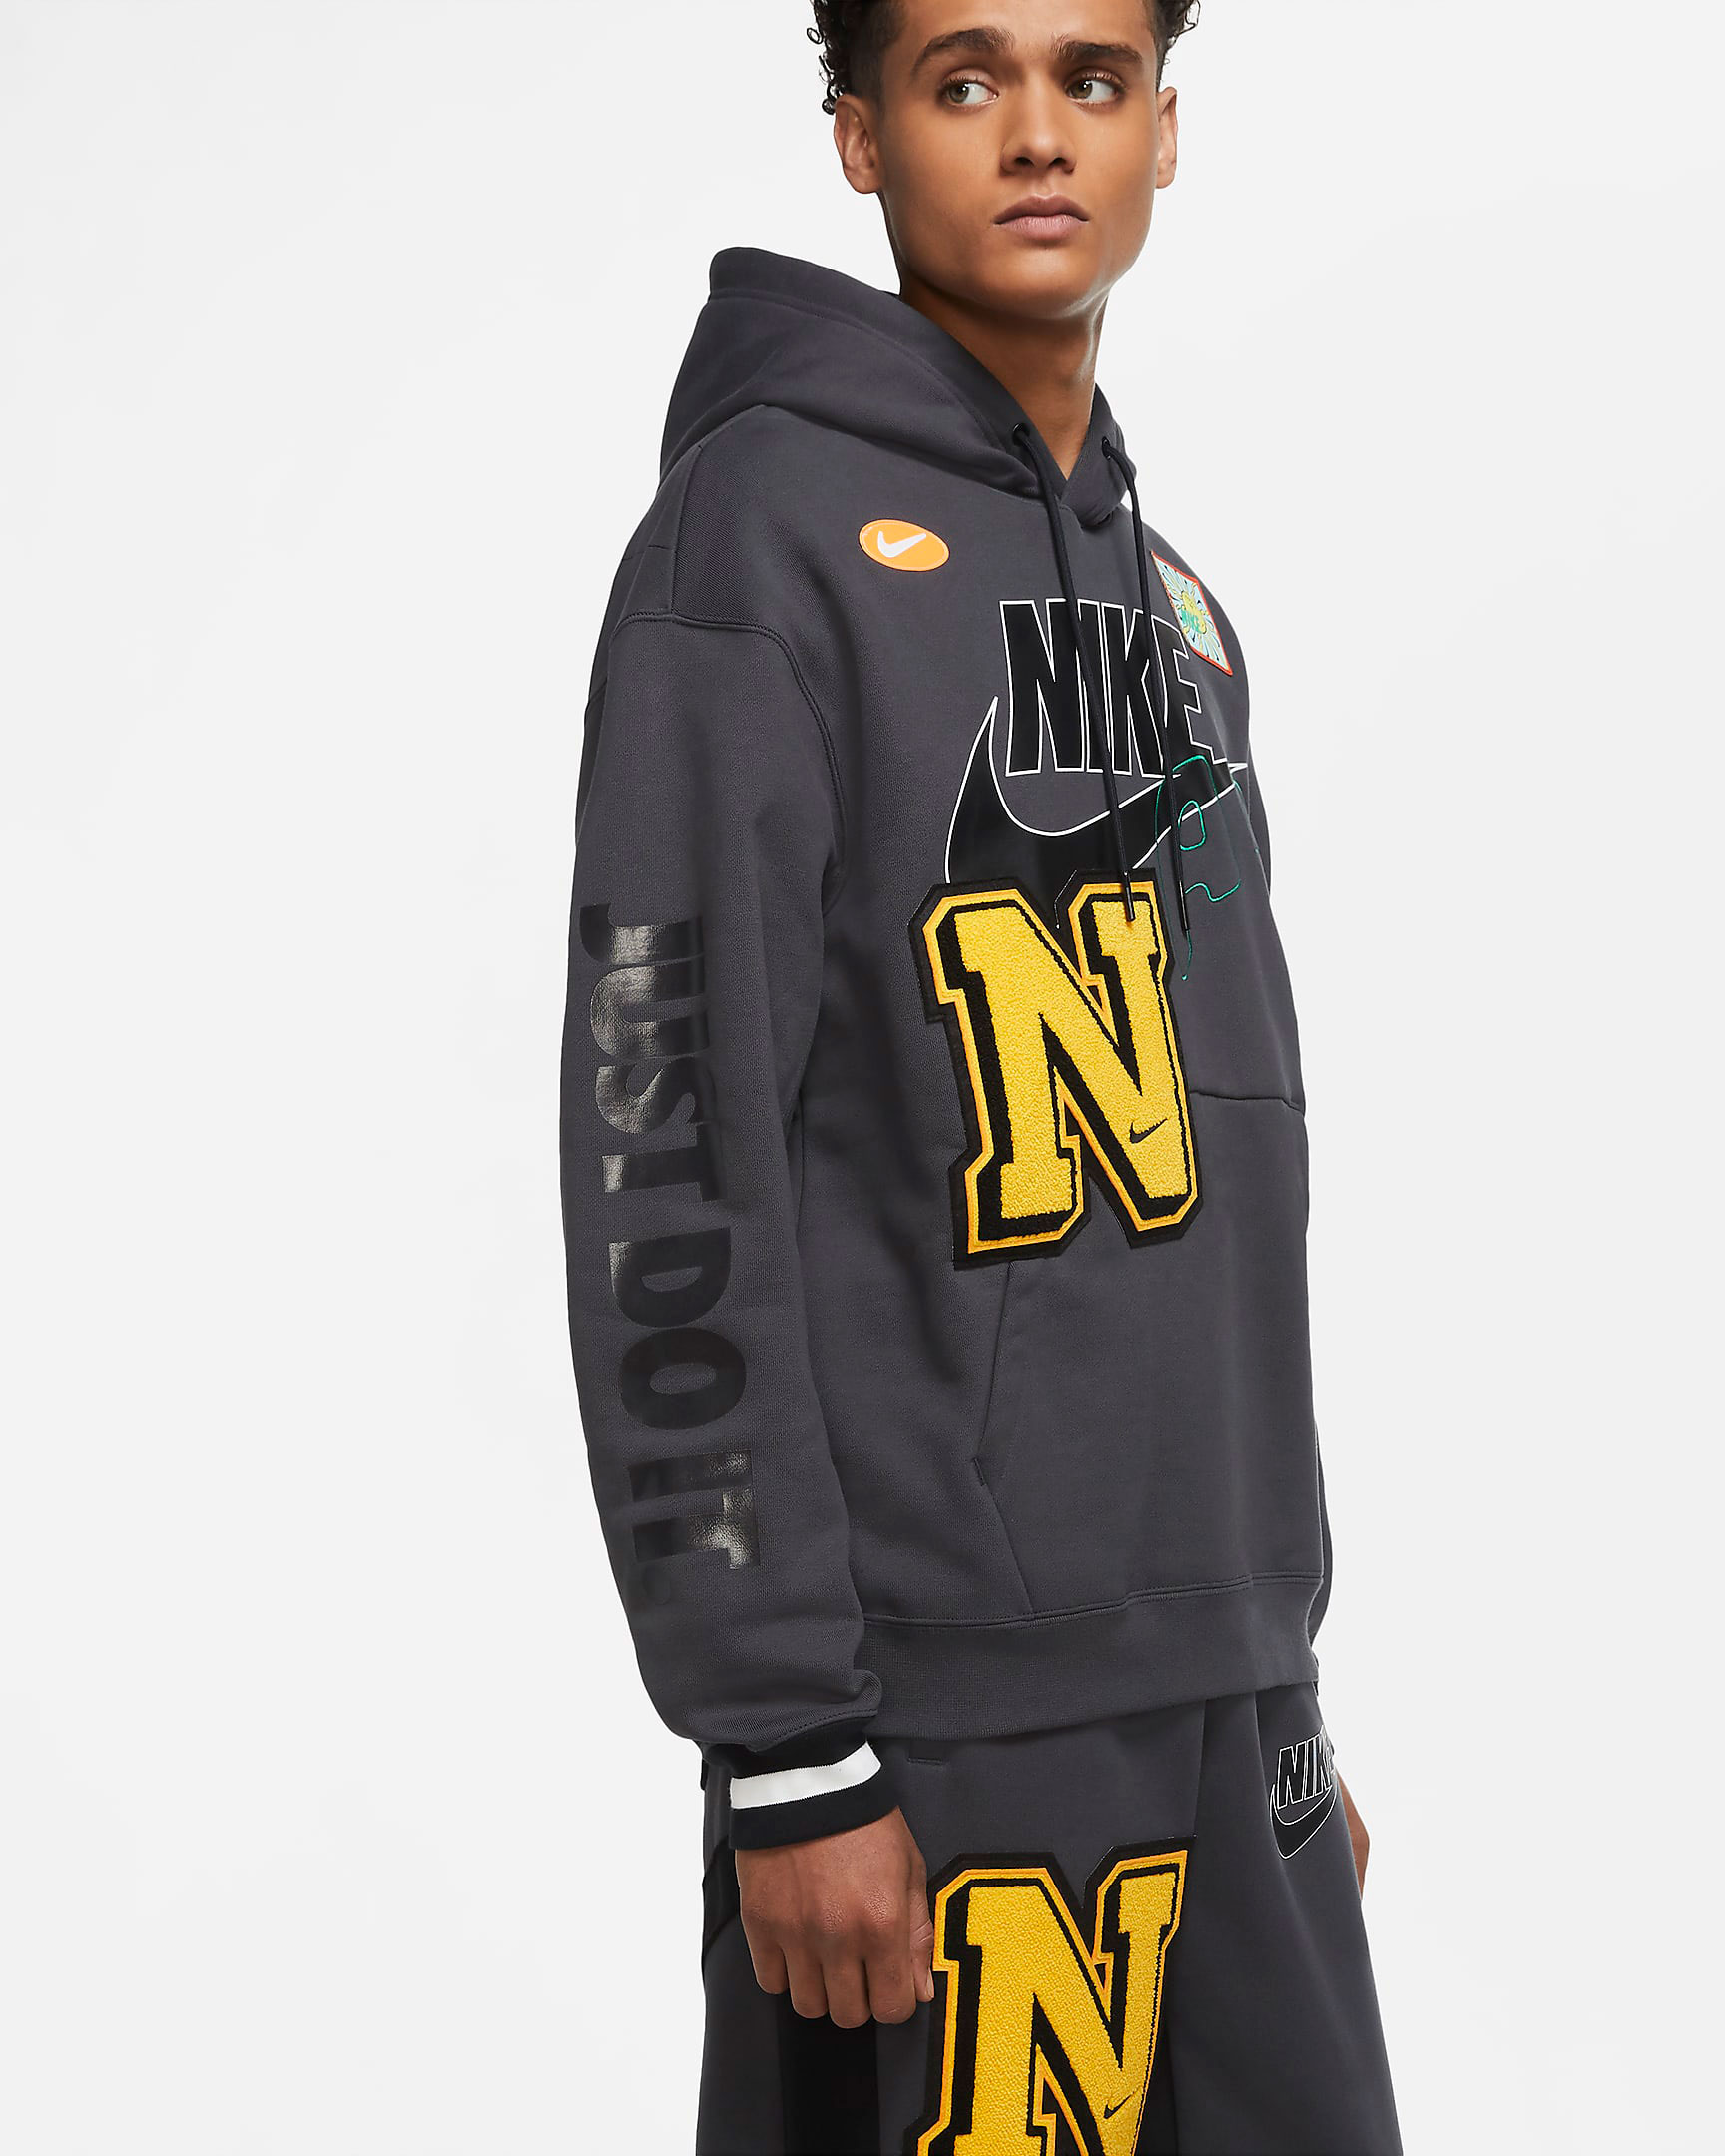 nike-dunk-high-varsity-maize-hoodie-match-3